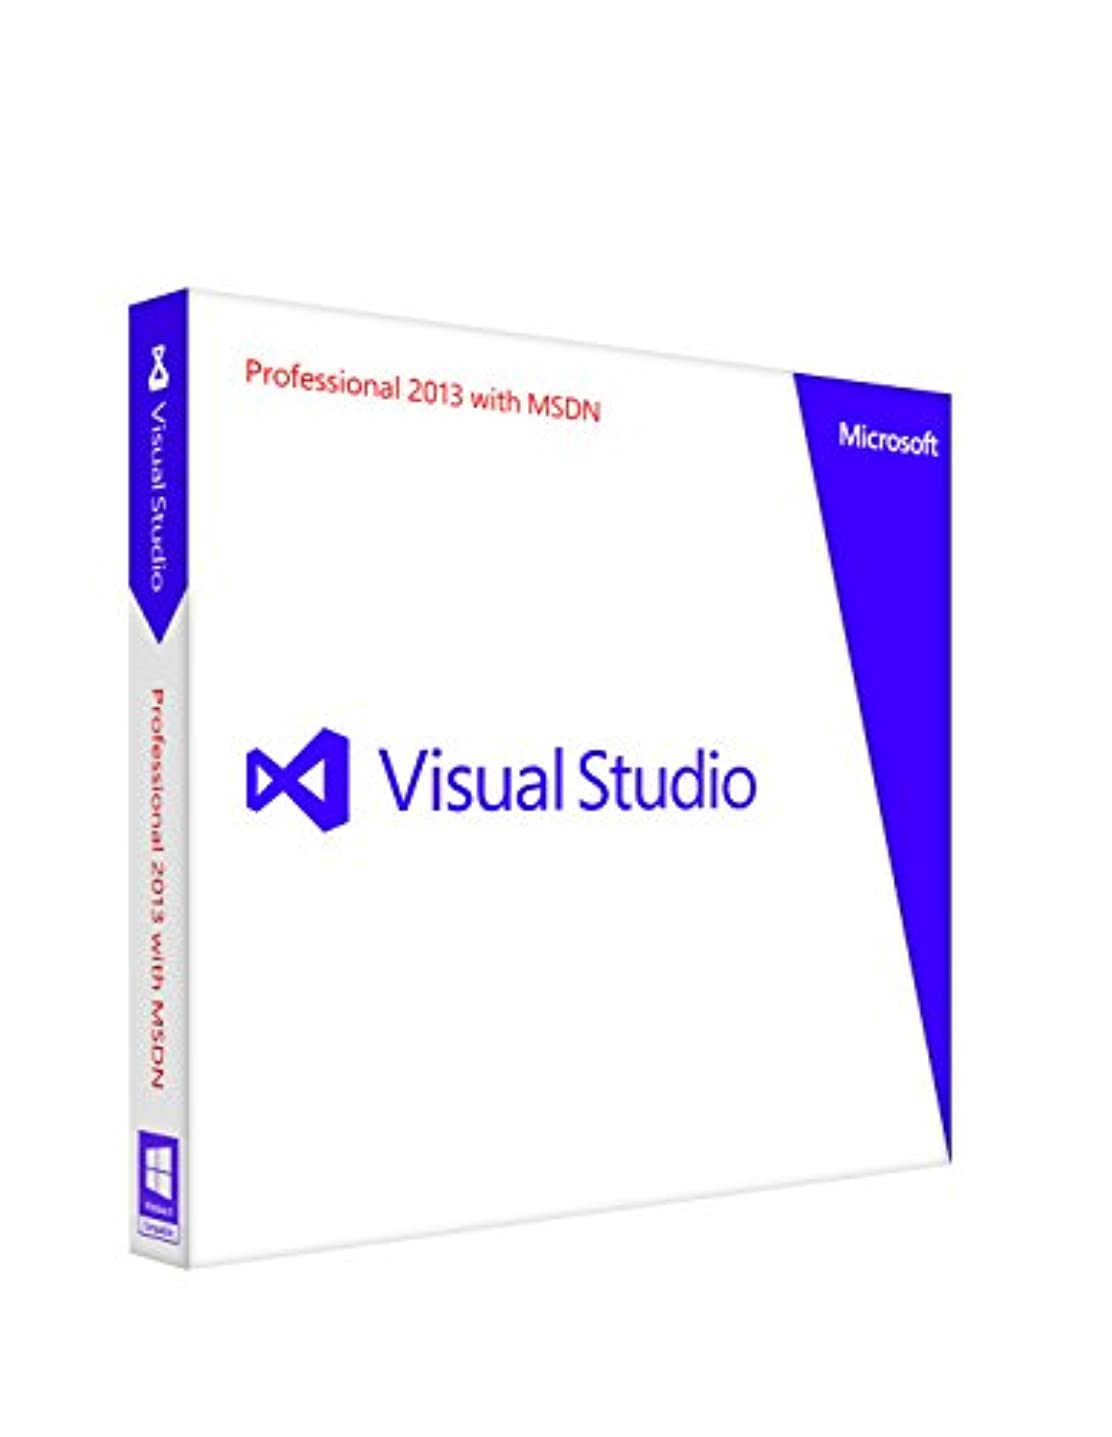 現代精緻化便益Microsoft Visual Studio Professional 2013 with MSDN 通常版